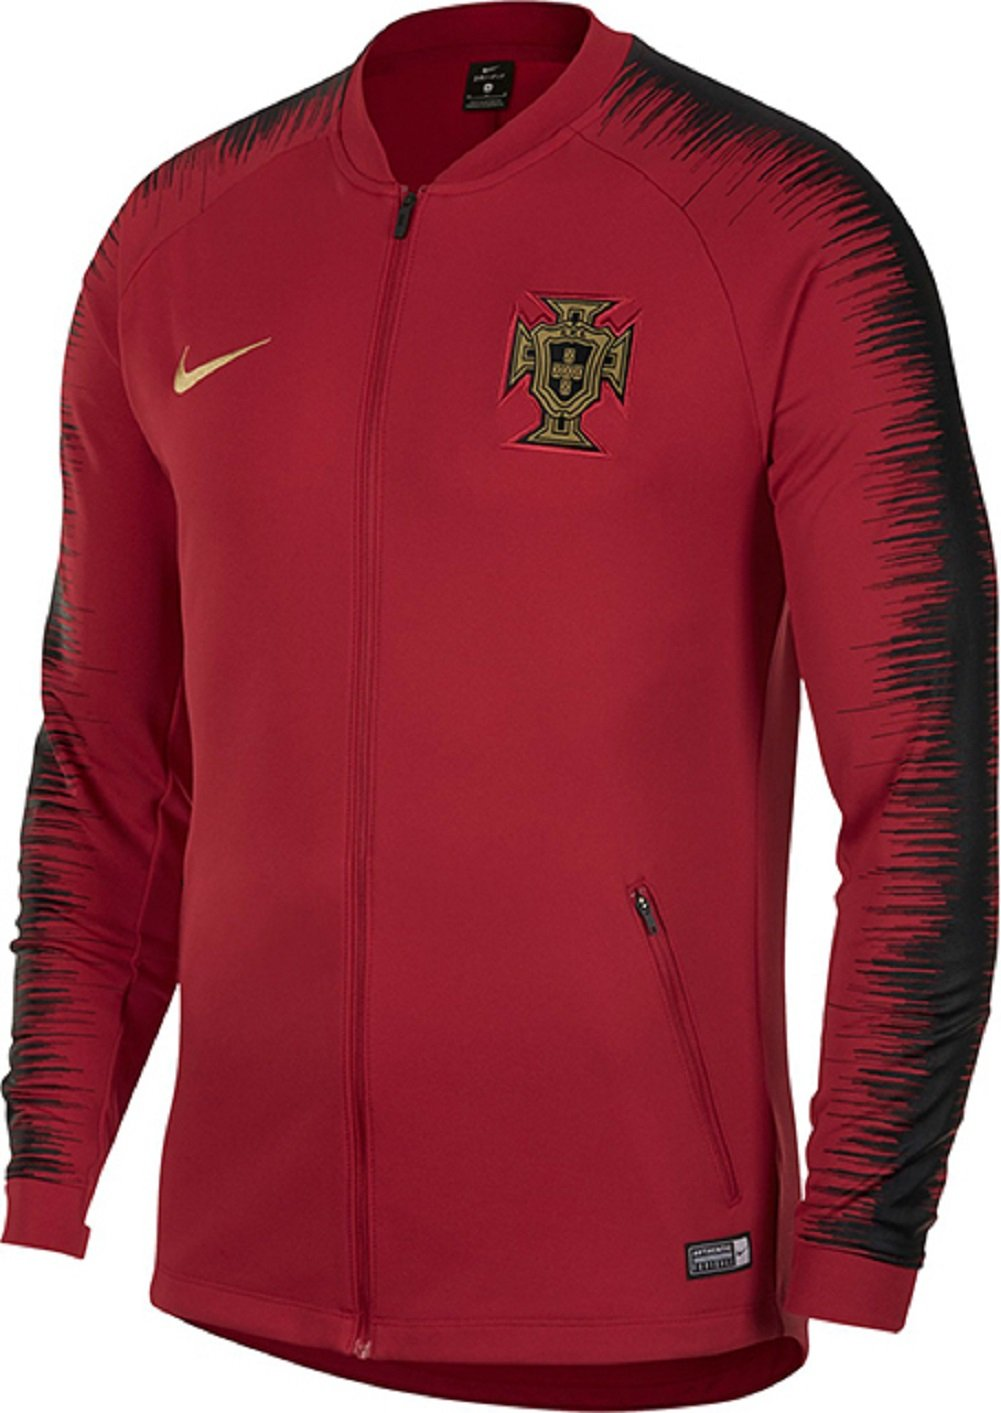 2018-2019 Portugal Nike Anthem Jacket (Red) B07BQB2GNBRed Medium 38-40\